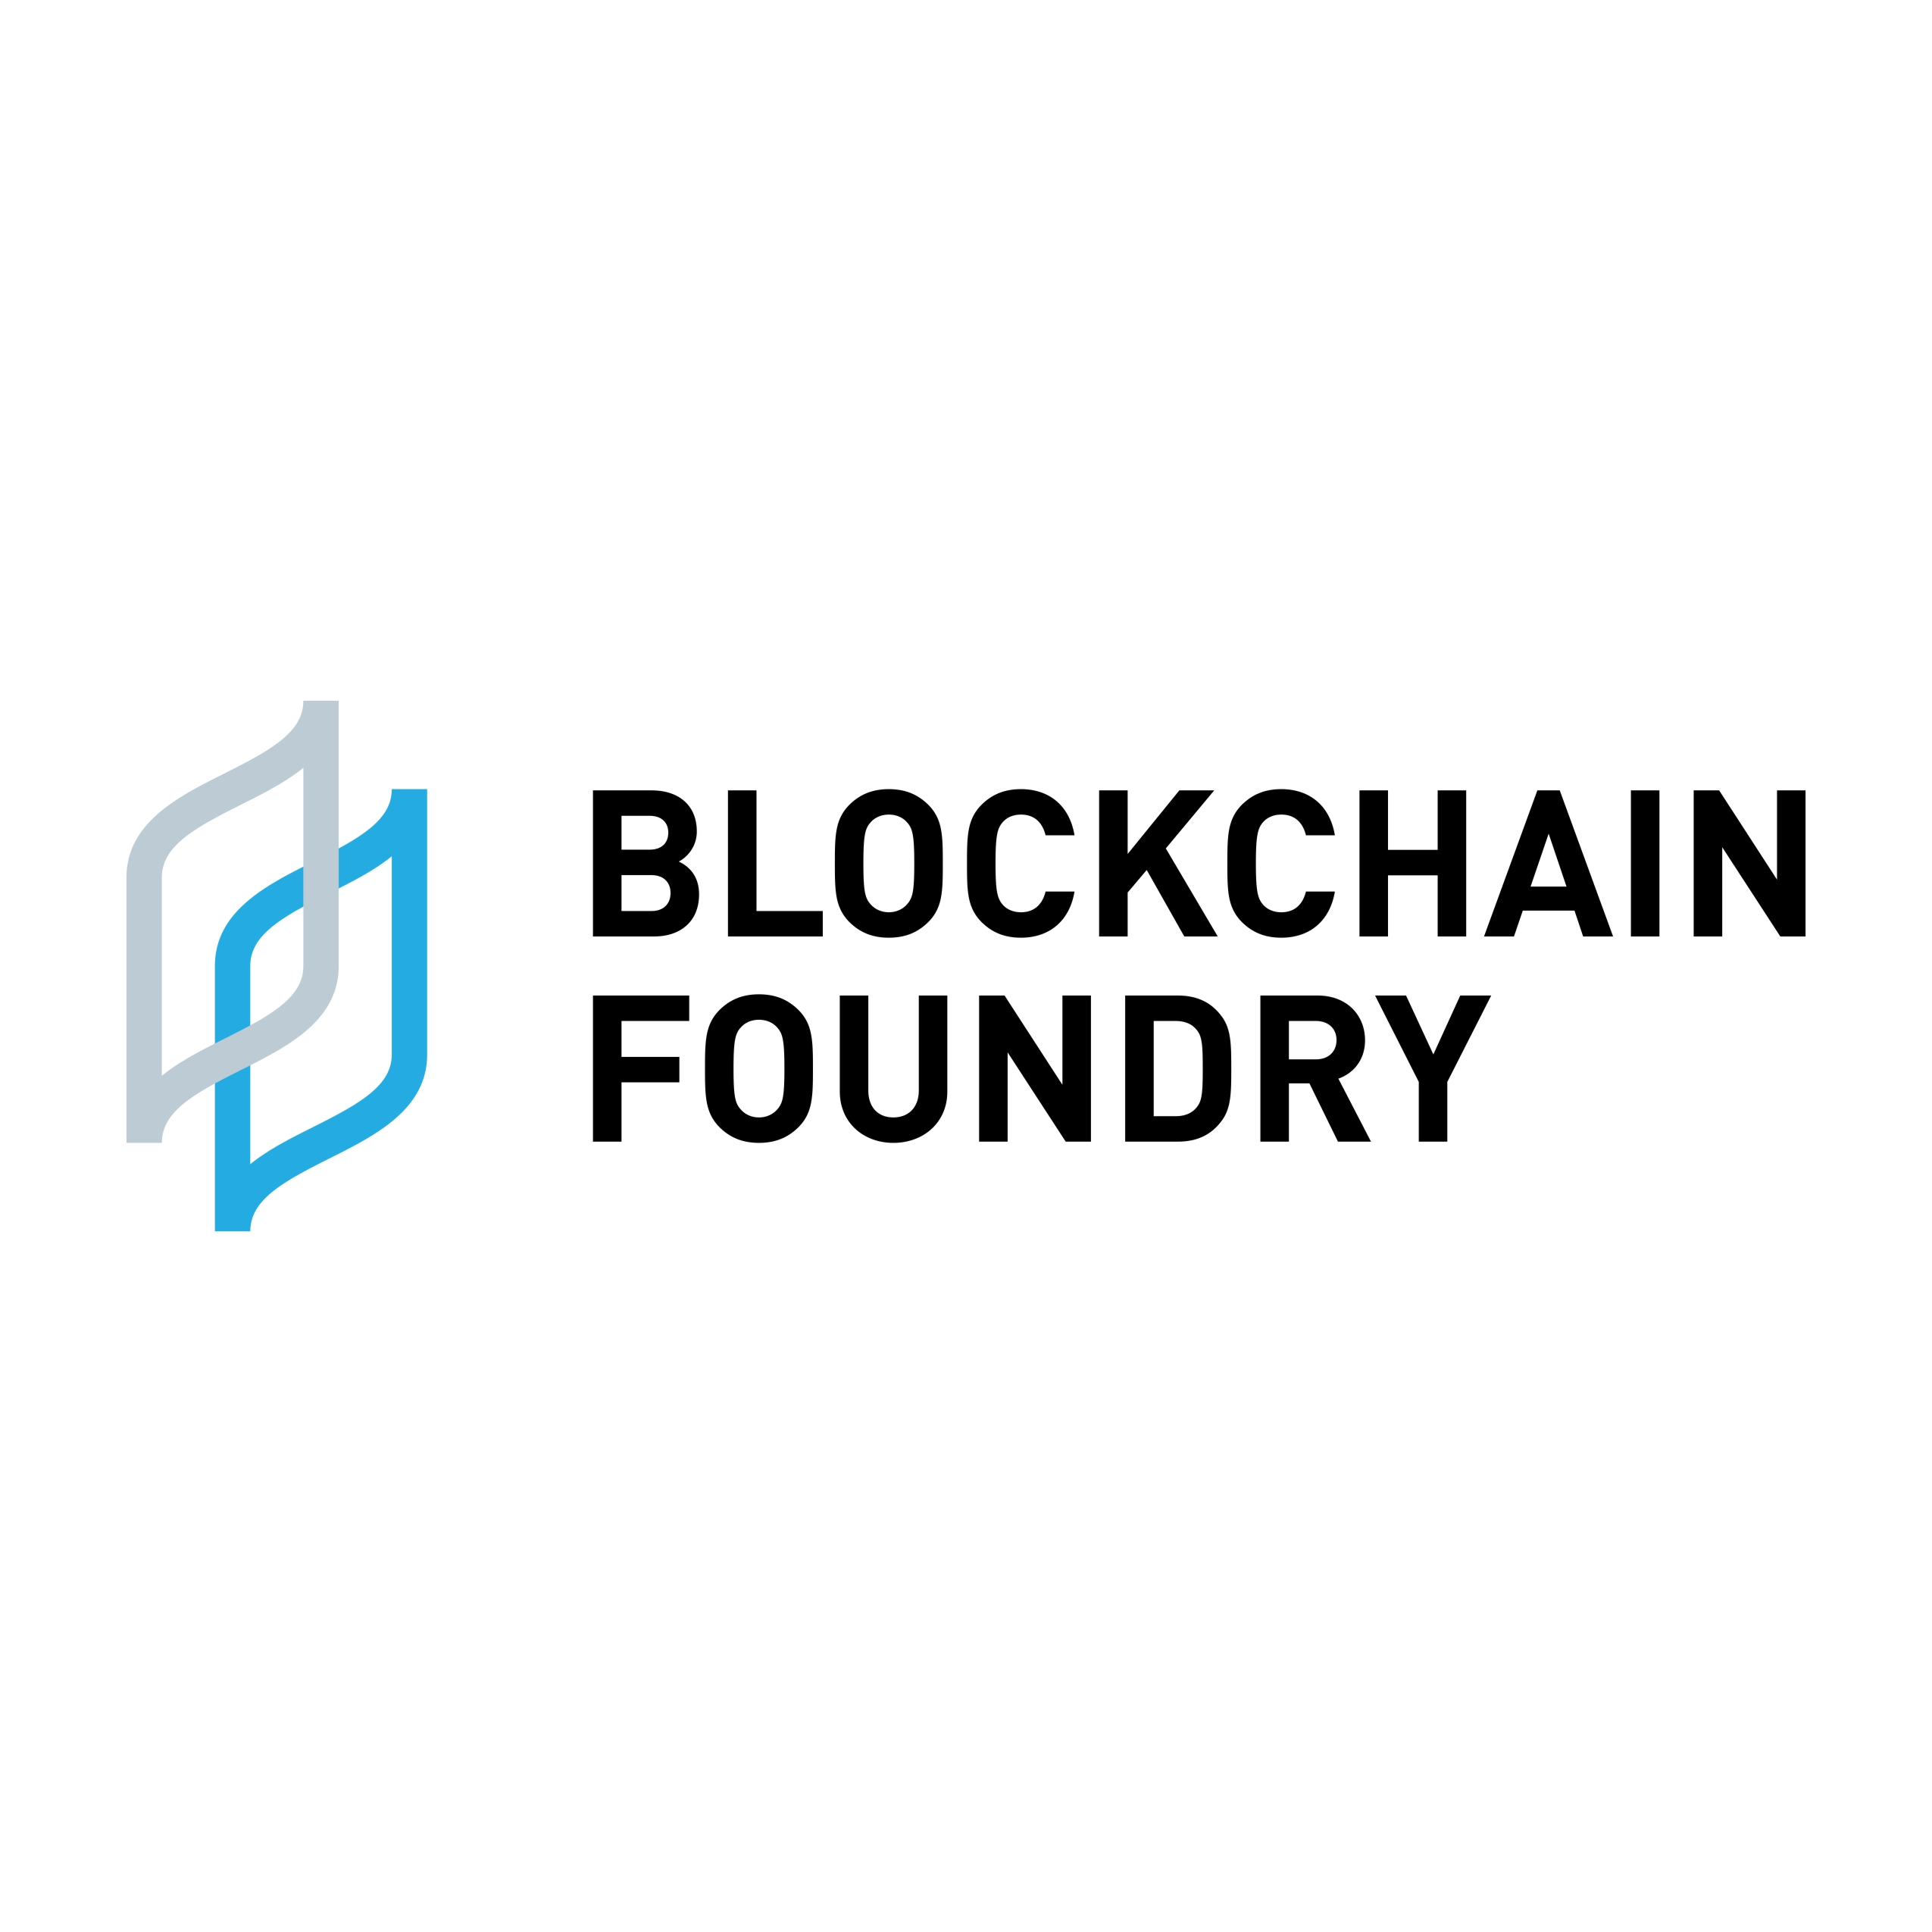 Blockchain Foundry Announces $4 Million Equity Facility with Alumina Partners